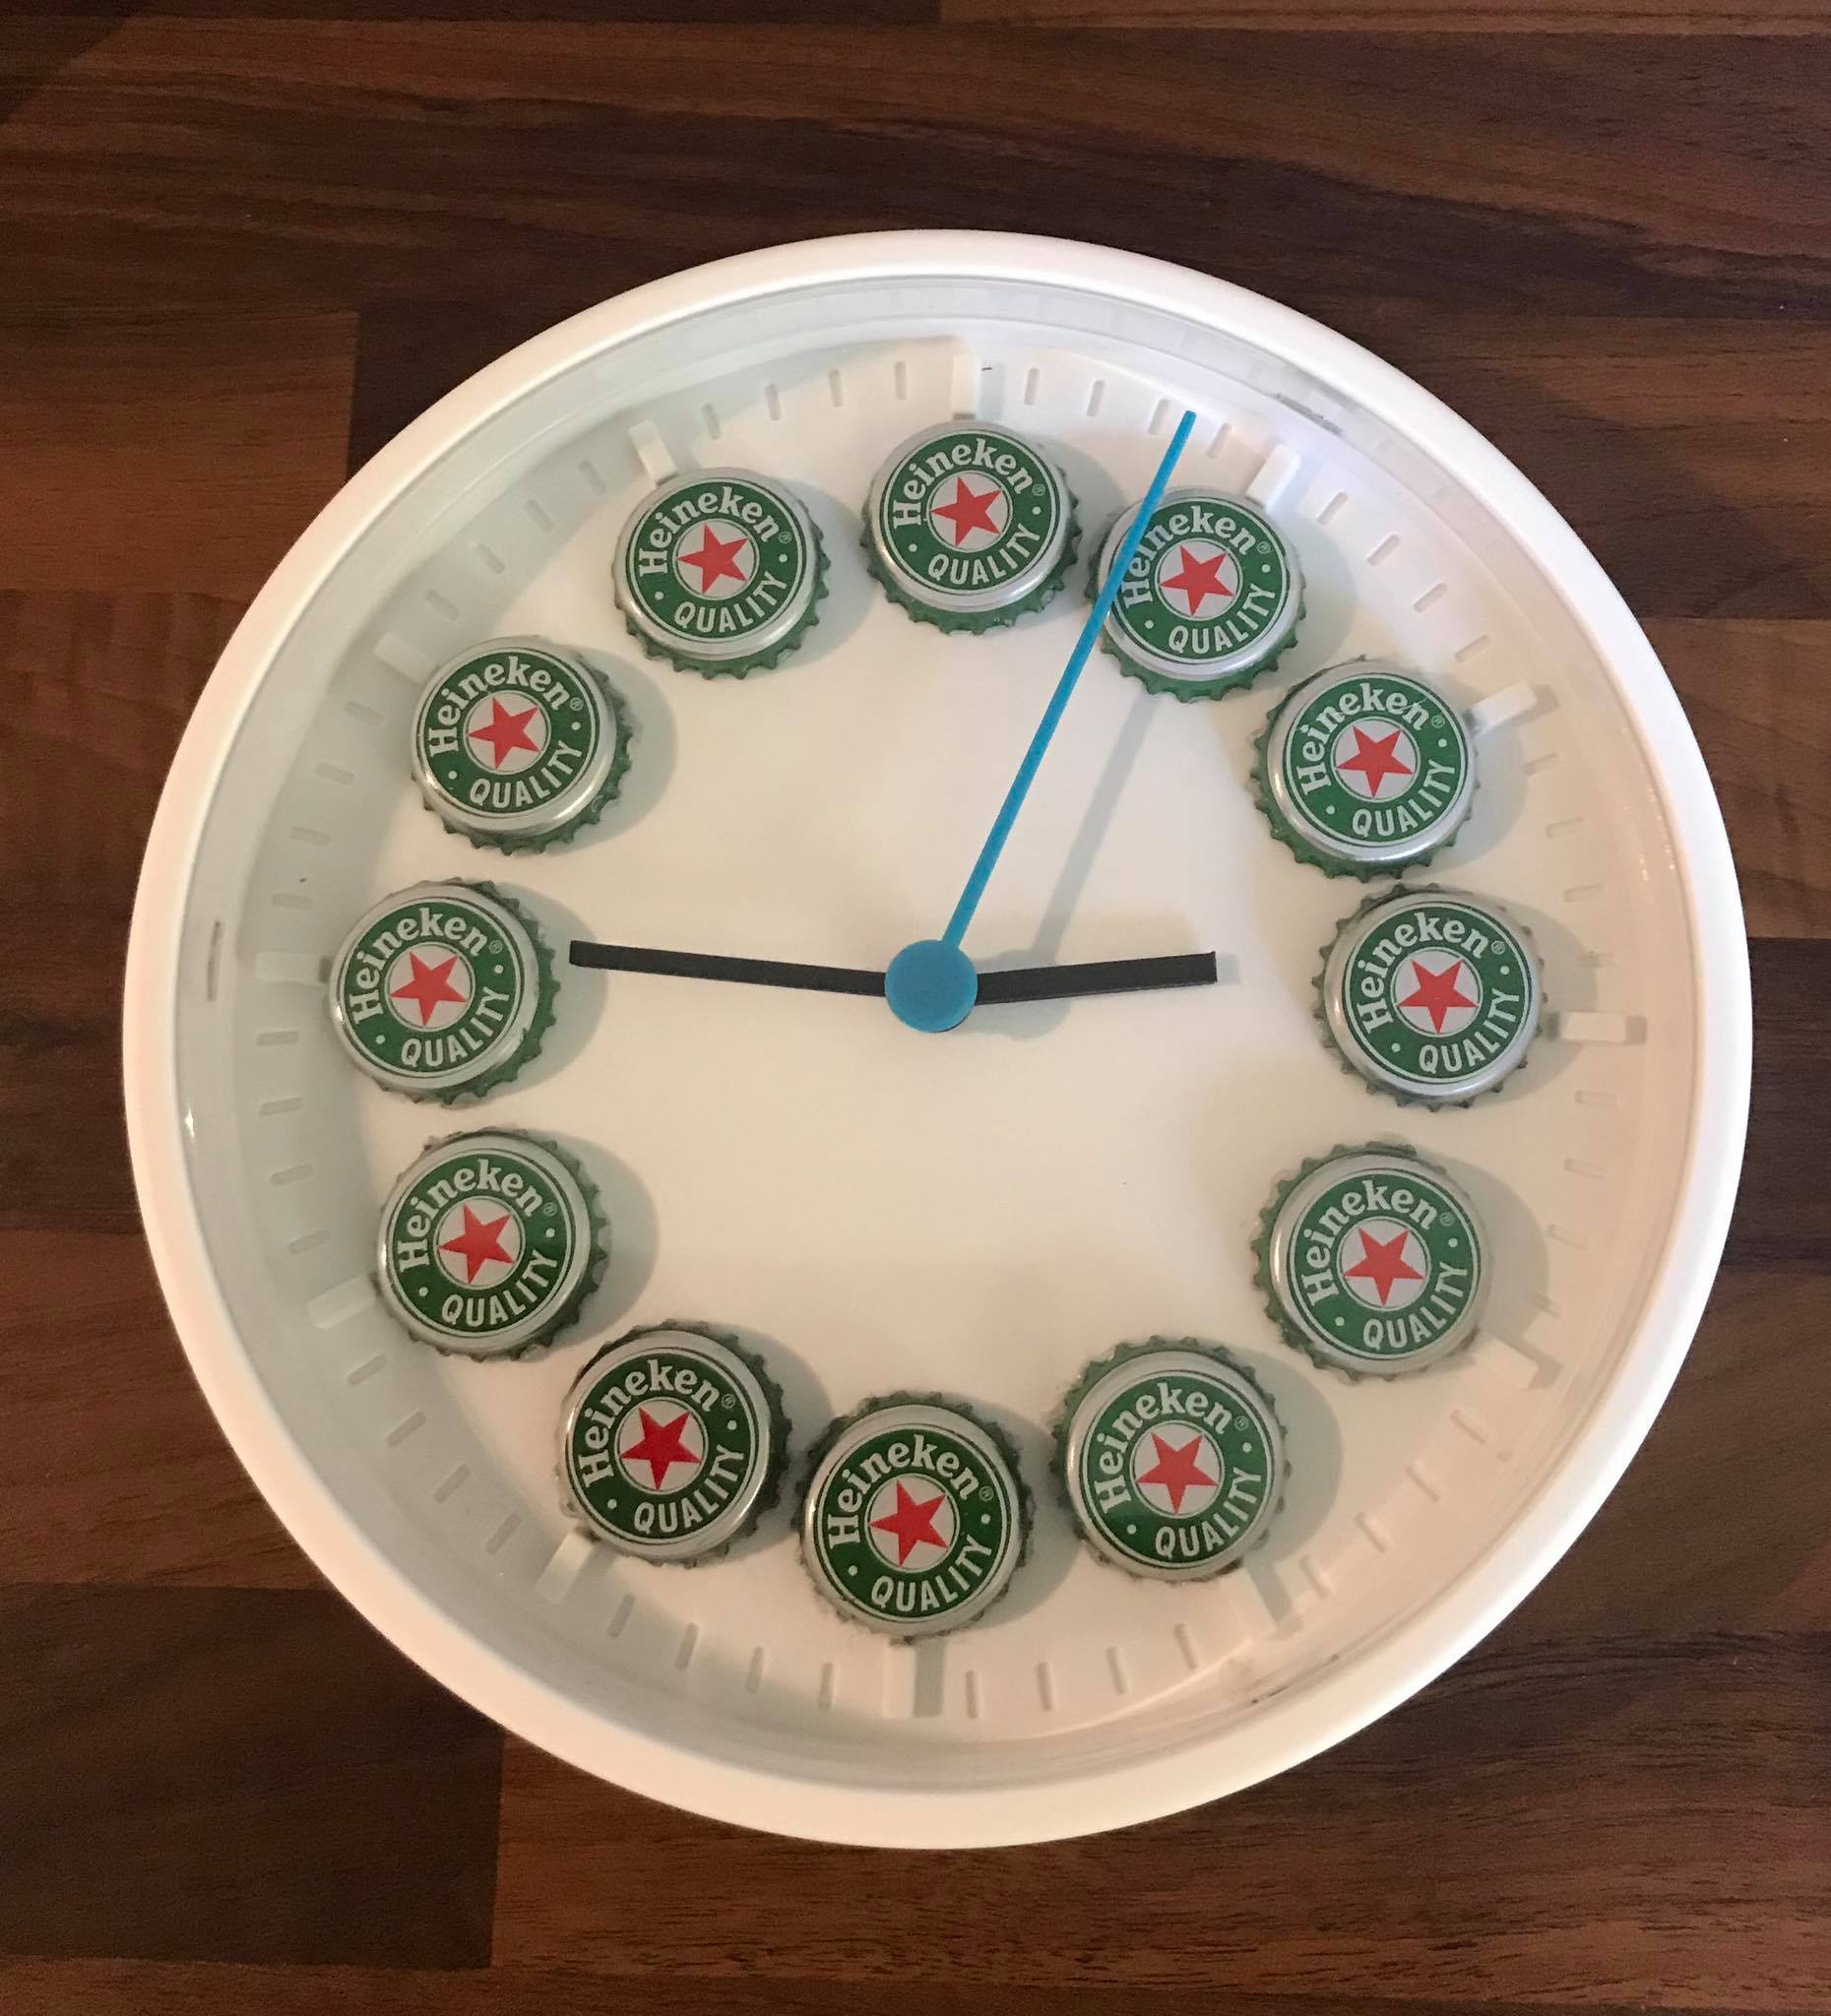 Heiniken Beer Clocks